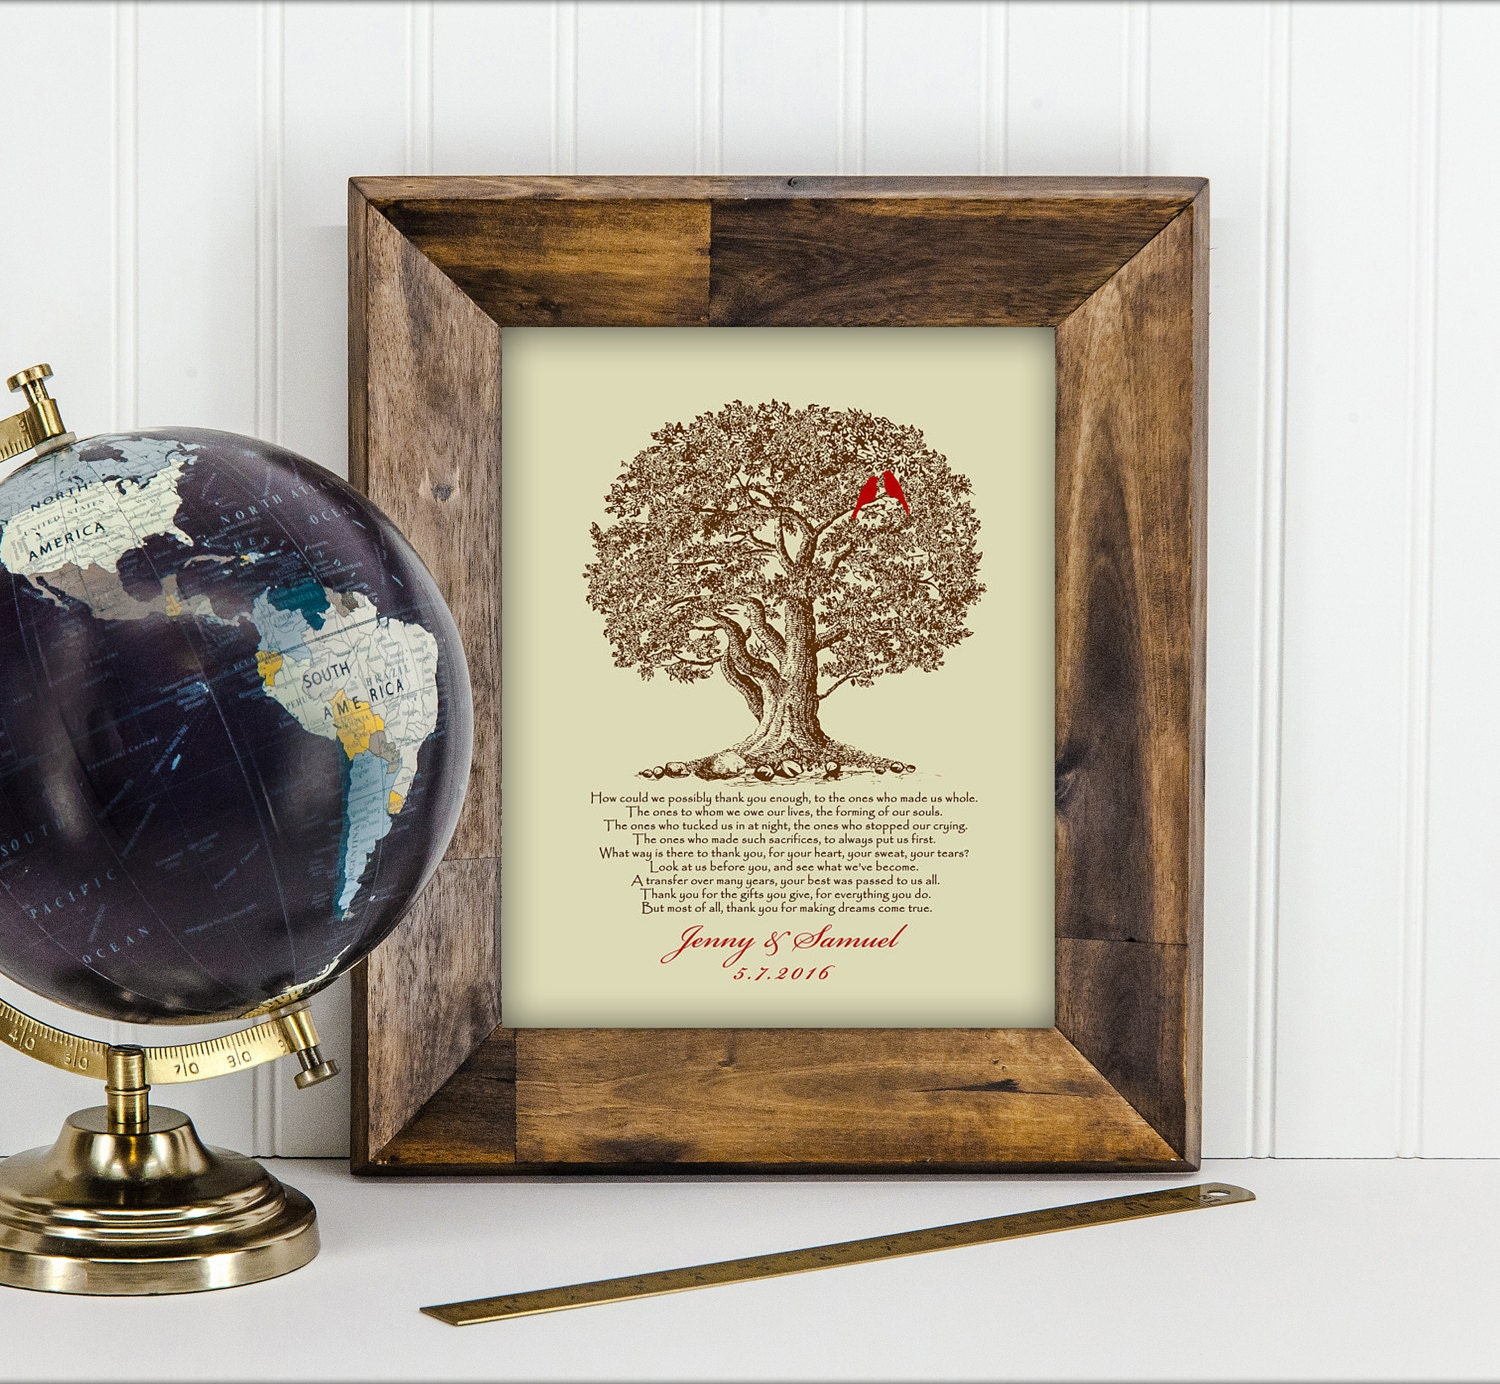 Wedding Gift From Parents: Wedding Gift For Parents From Bride And Groom Thank You